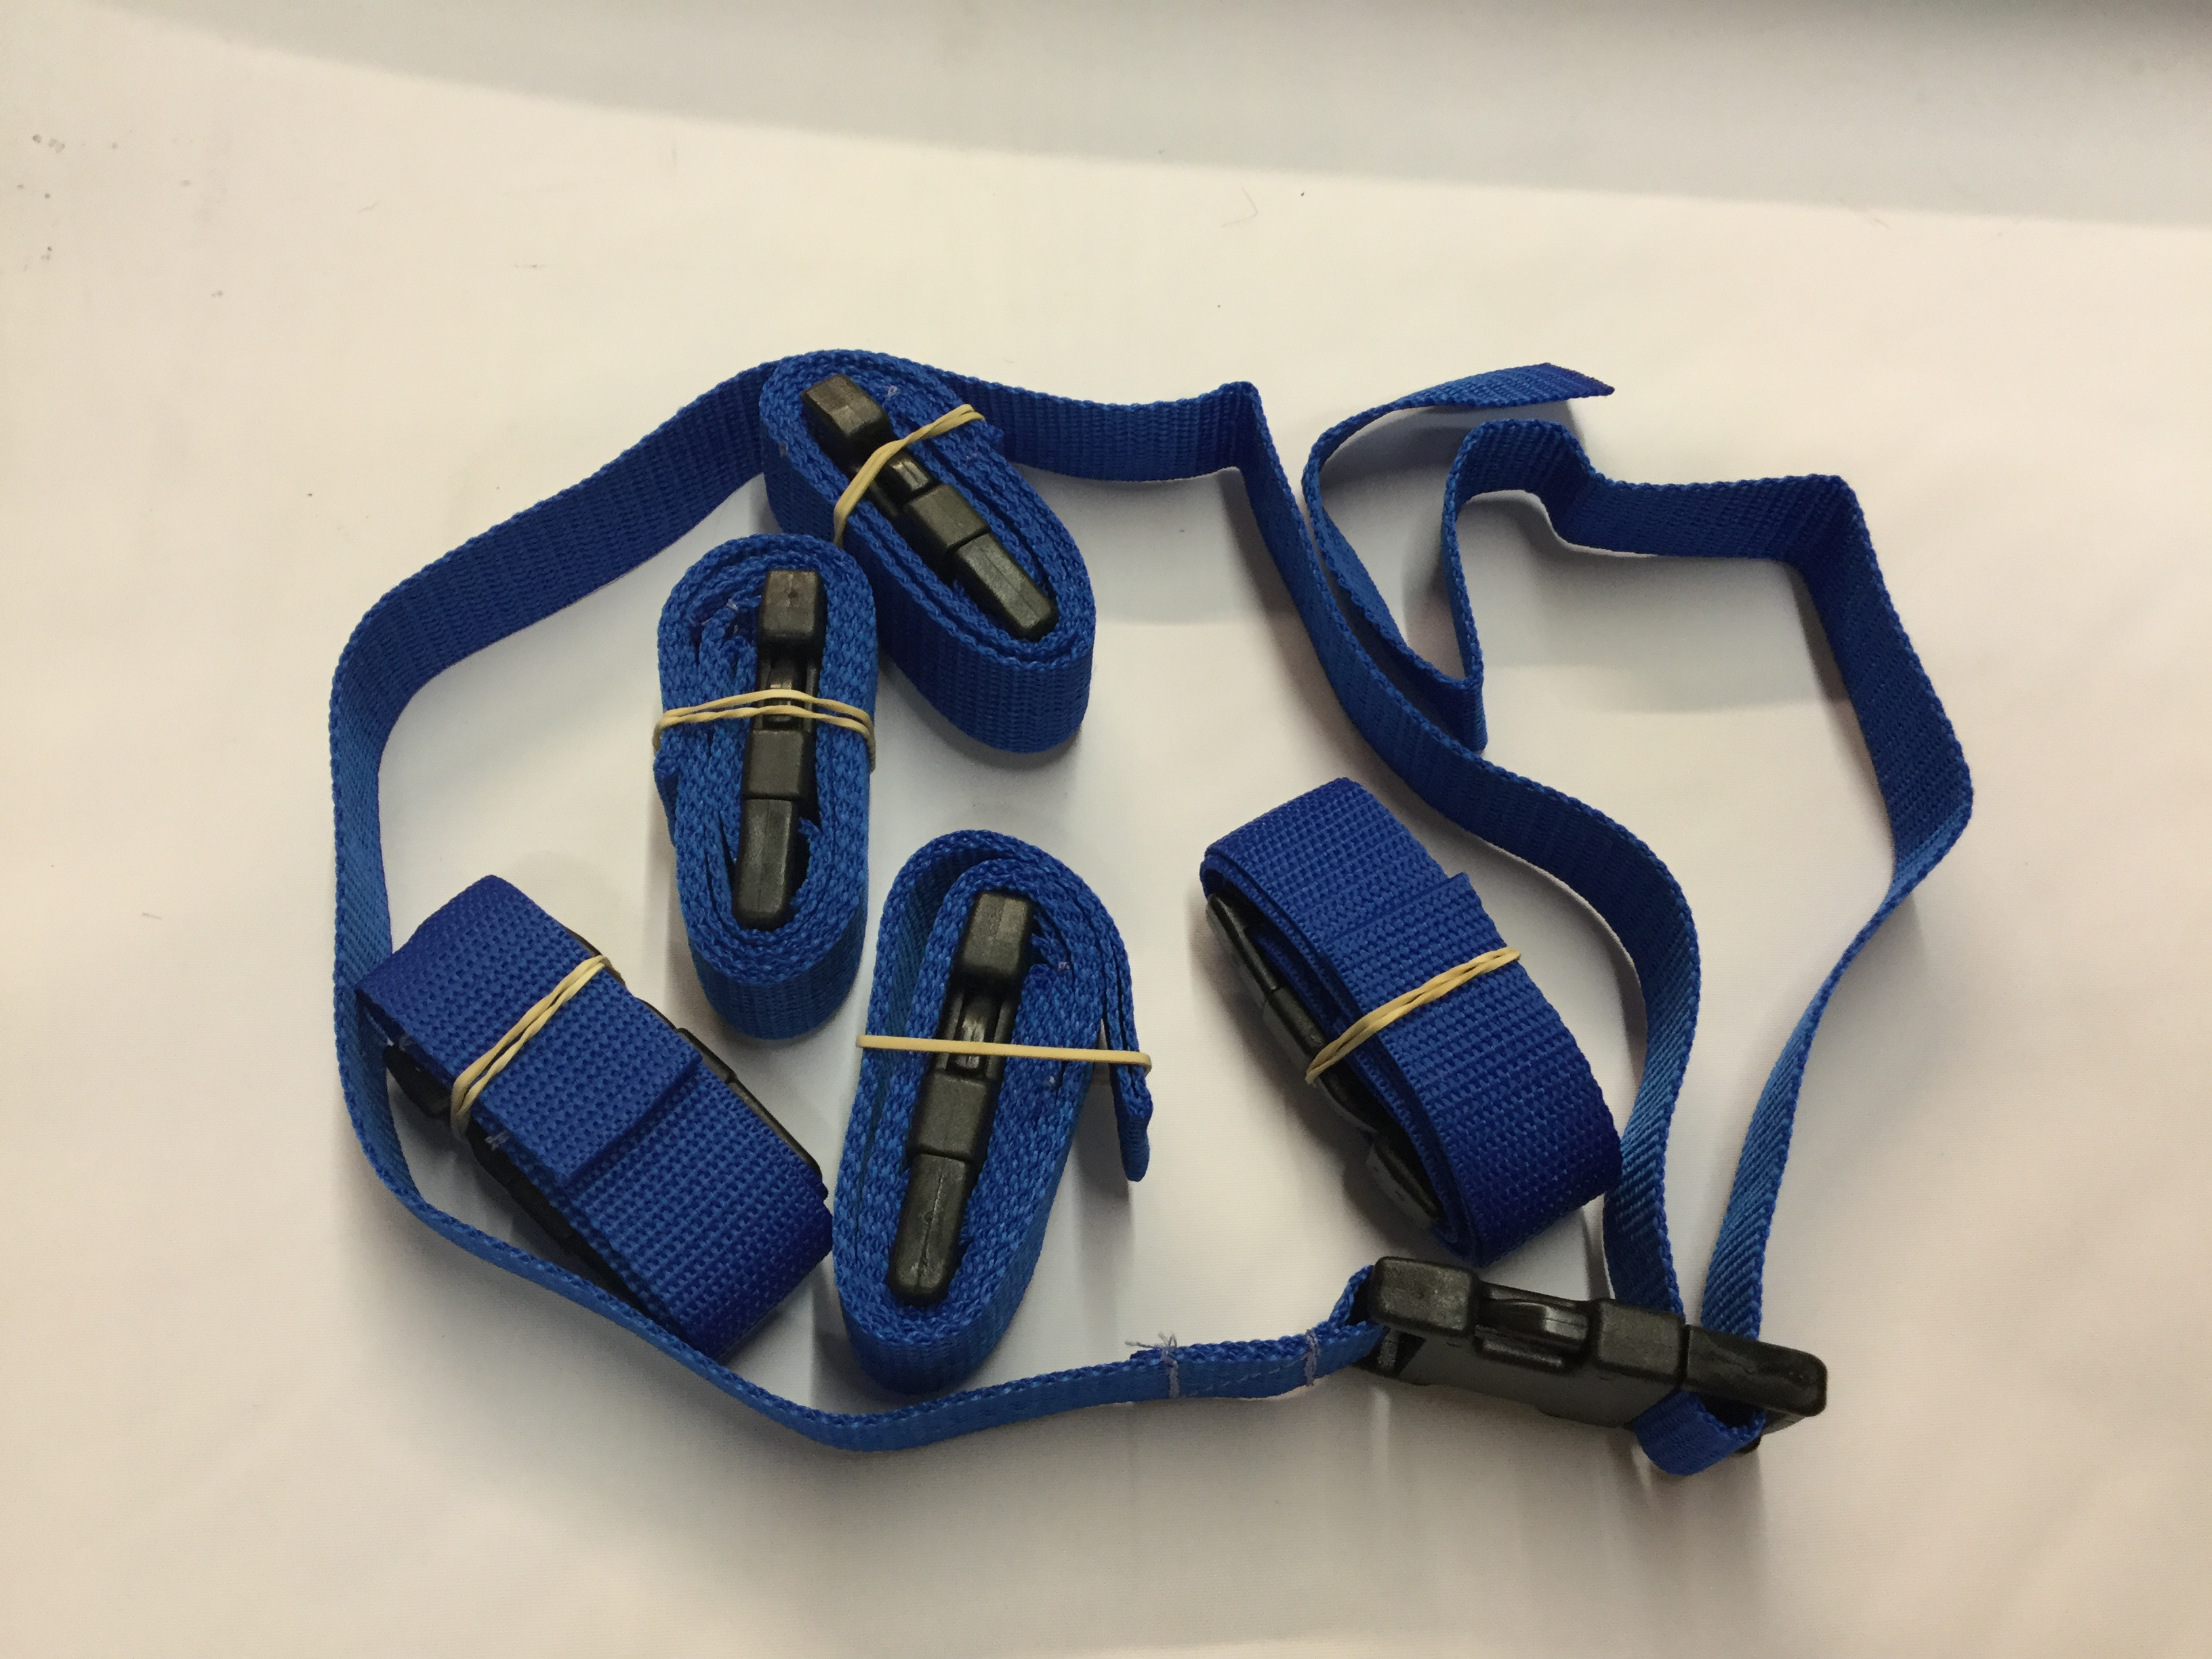 1 Mtr Webbing with Side Release Buckle Royal Blue